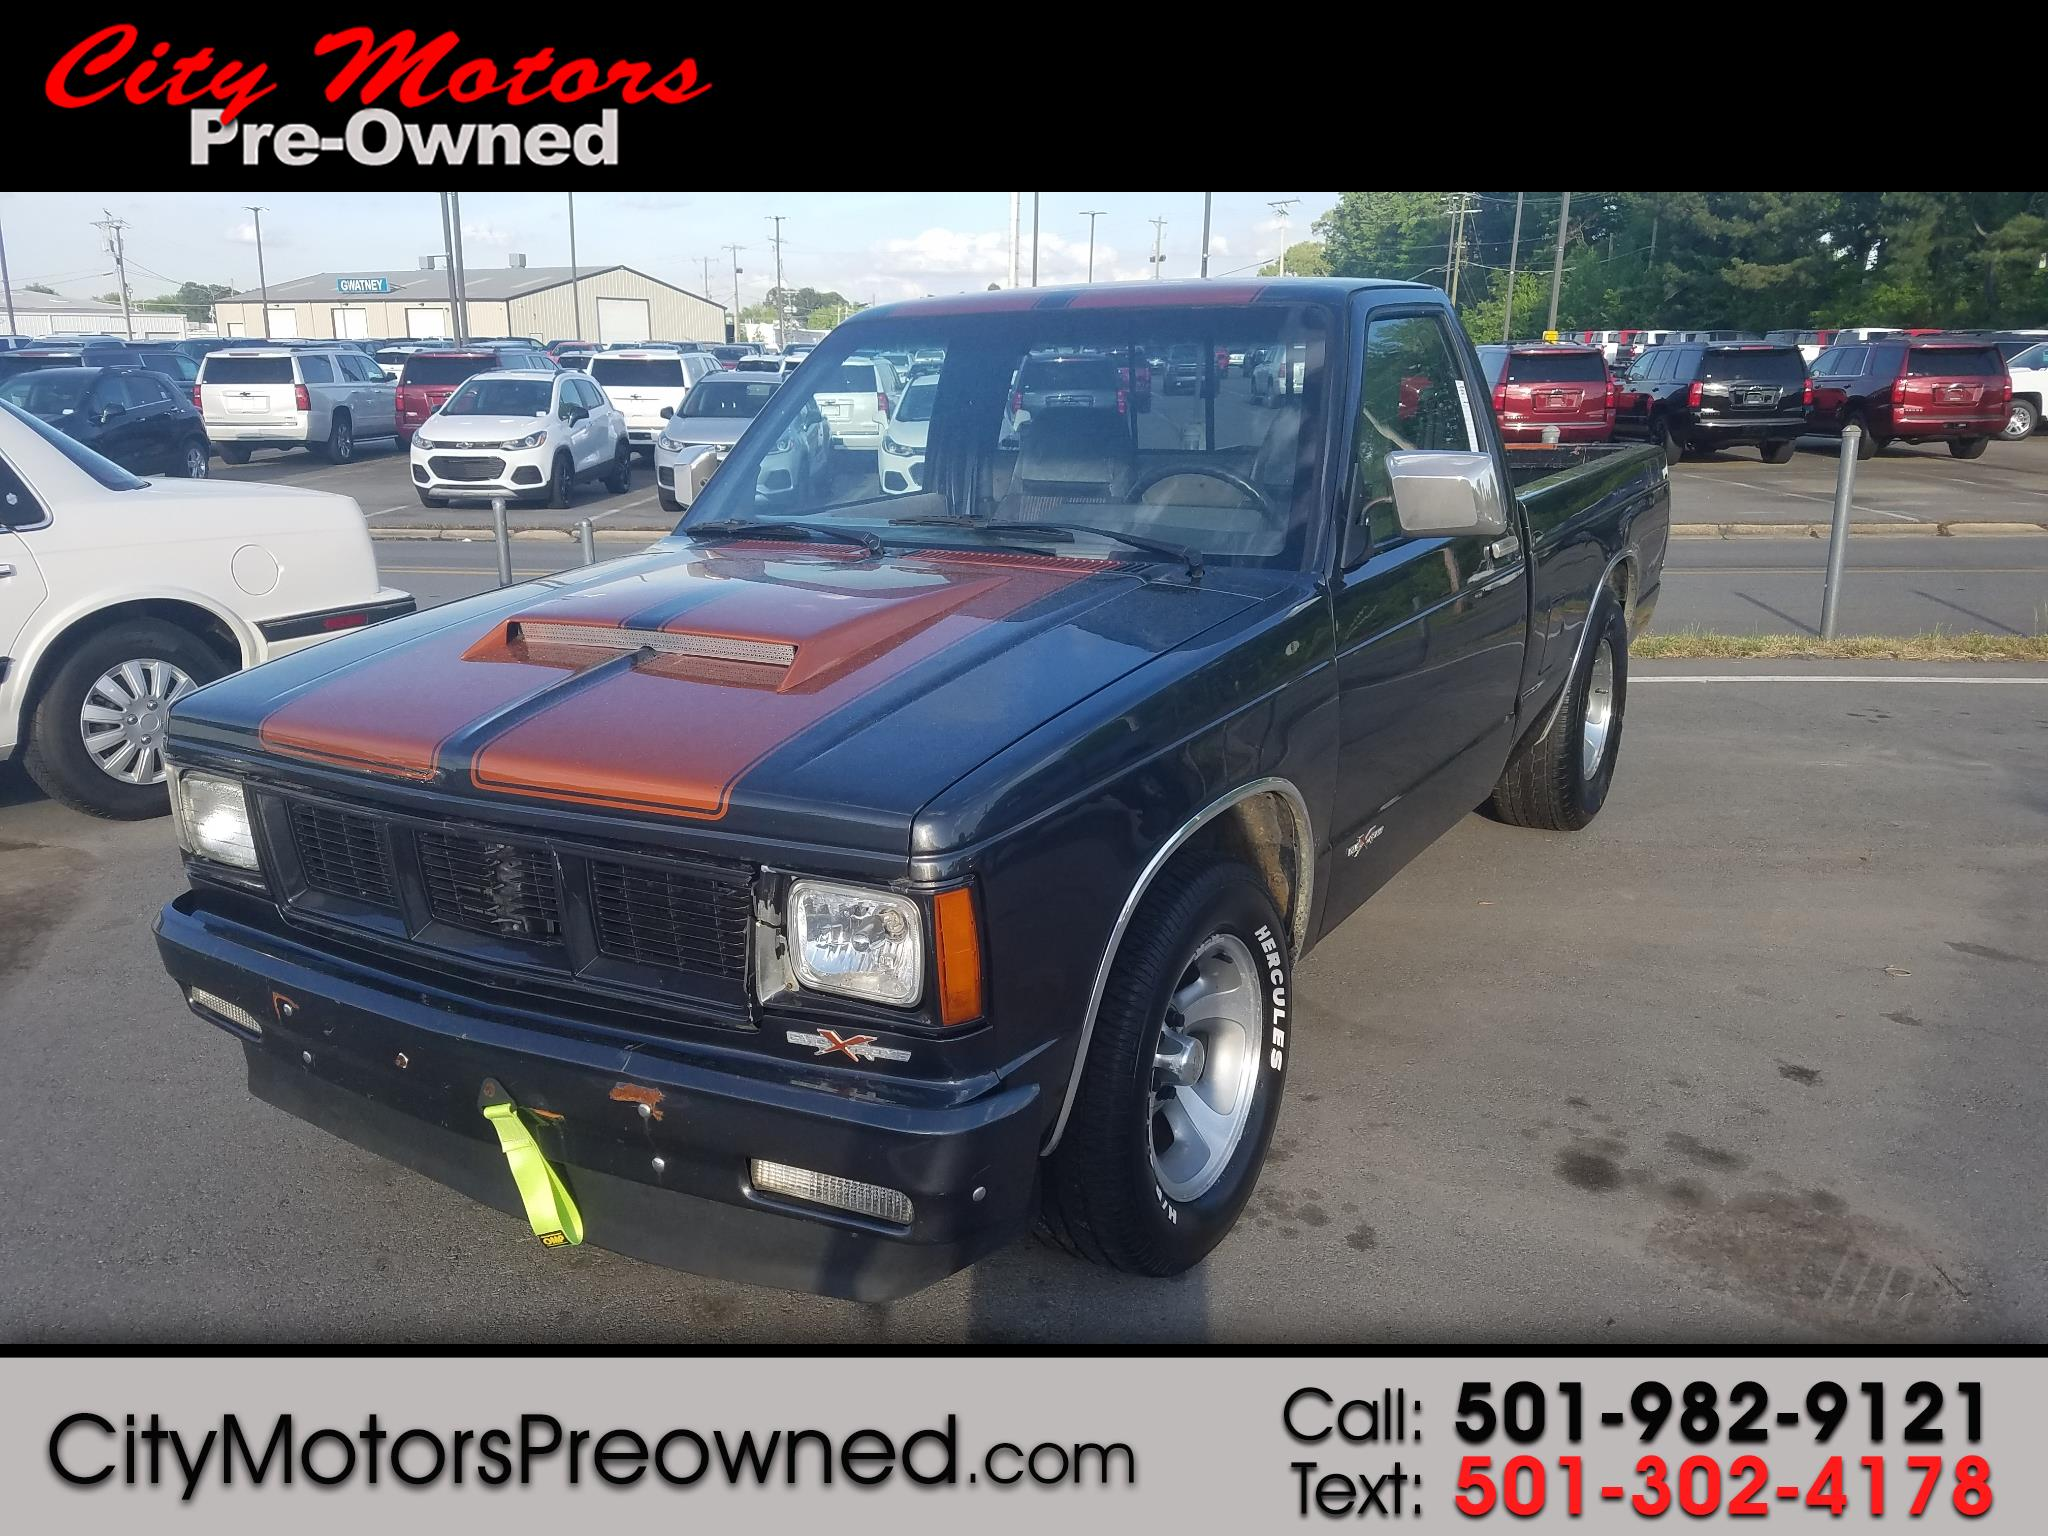 Used Cars for Sale Jacksonville AR 72076 City Motors Pre-Owned